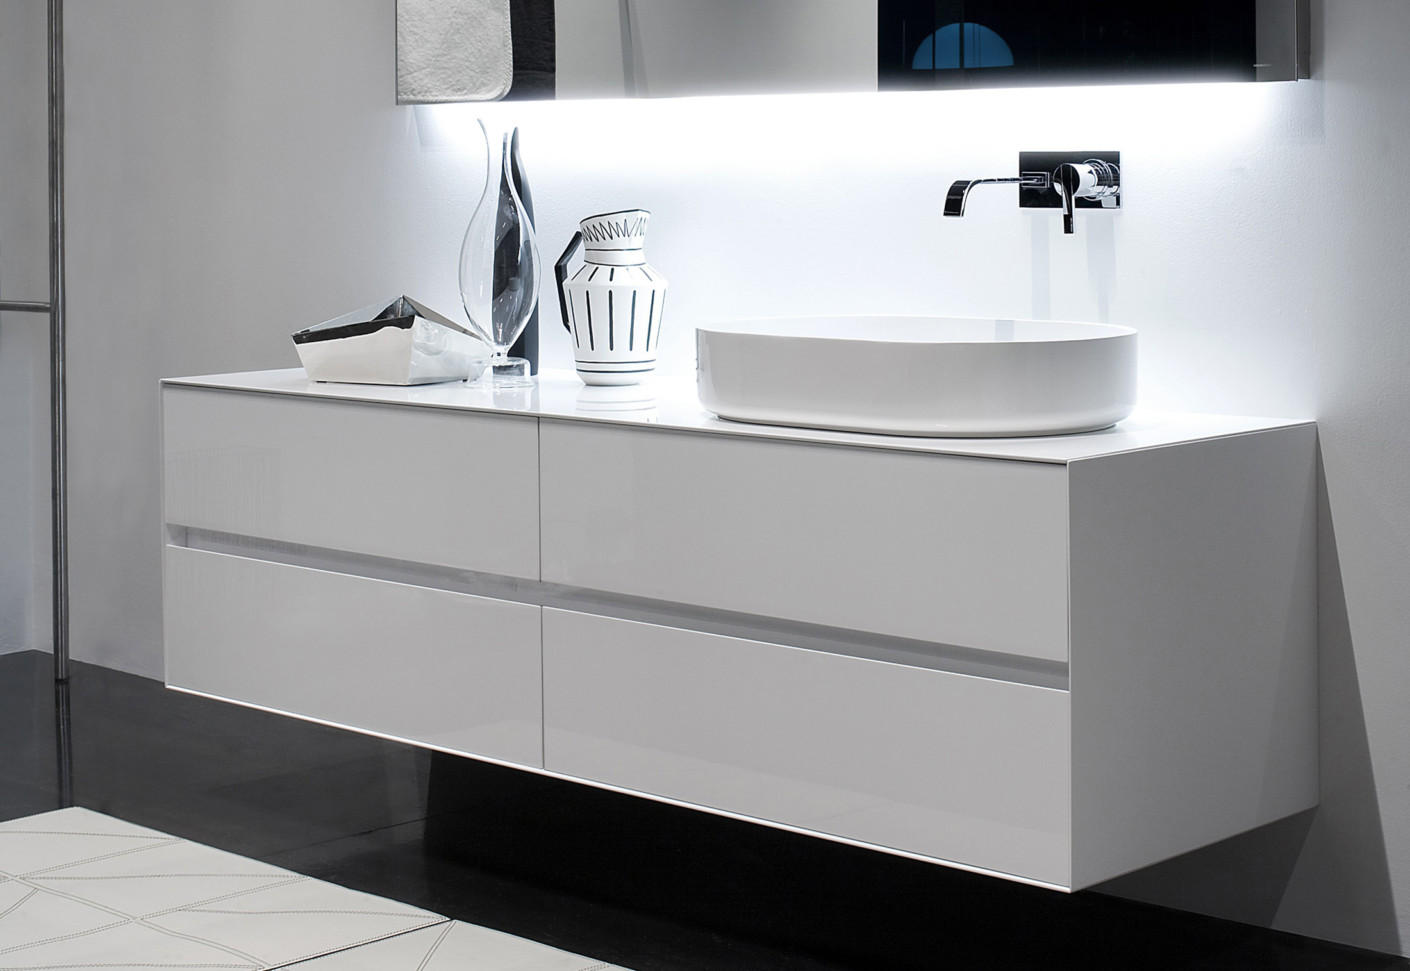 panta rei vanity unit by antonio lupi